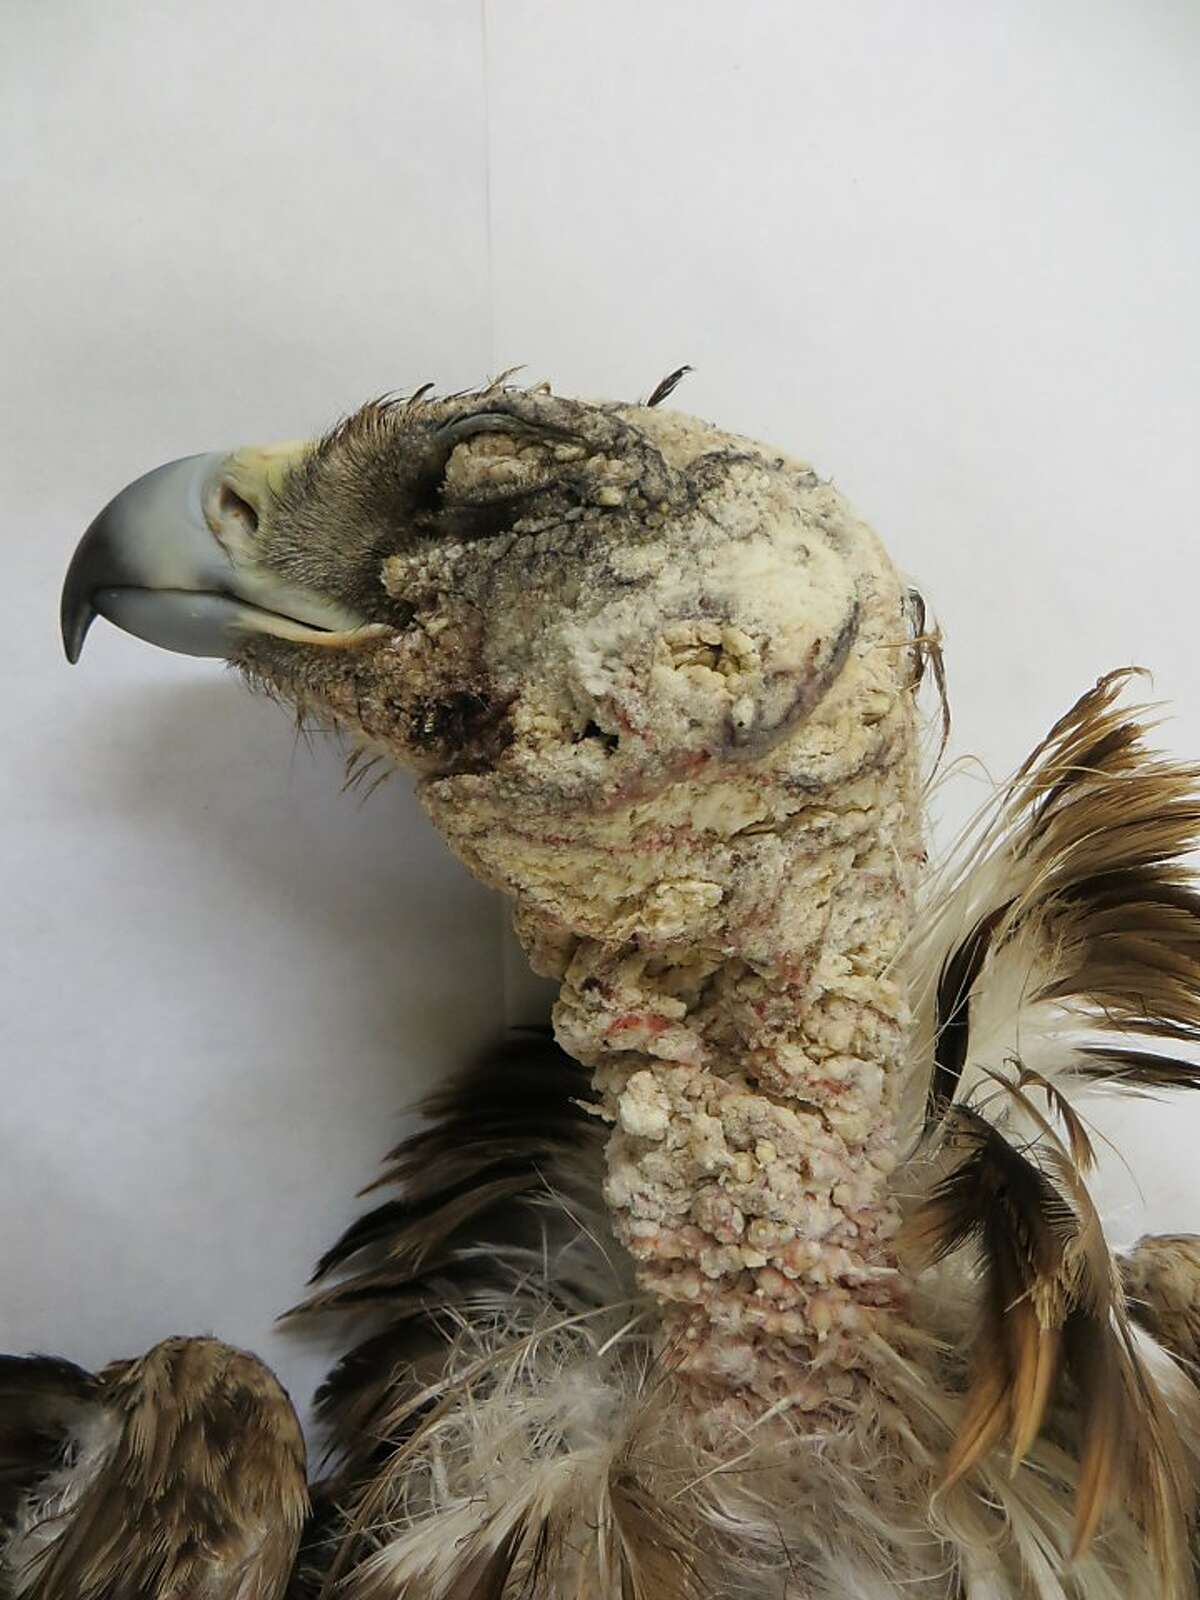 An golden eagle with mange caused by the mysterious mites.